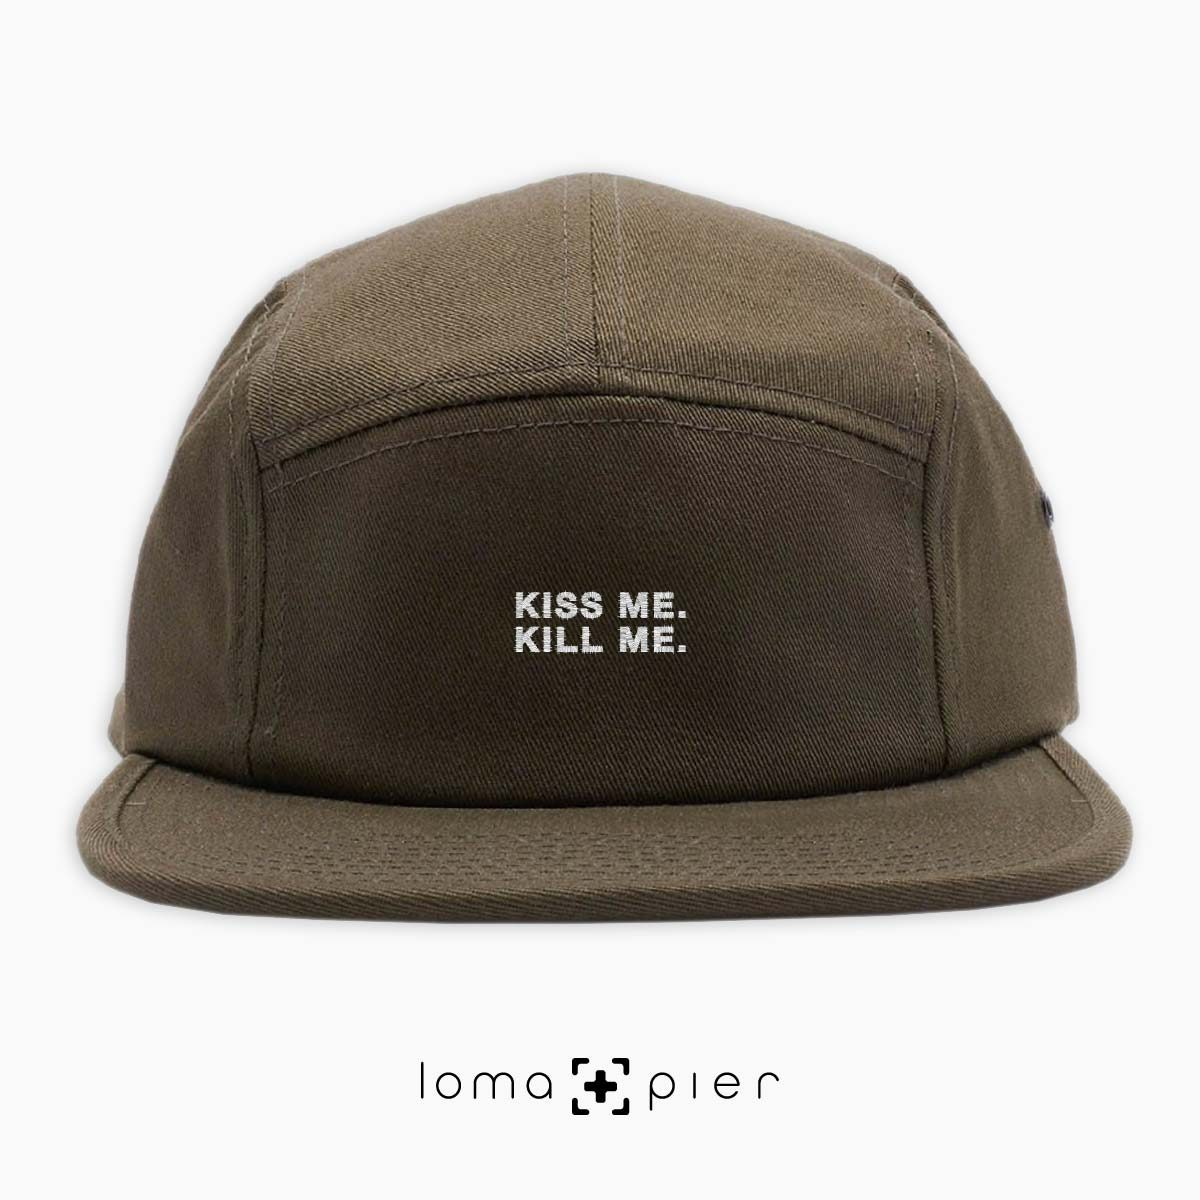 KISS ME. KILL ME. typography embroidered on an olive green cotton 5-panel hat with white thread by loma+pier hat store